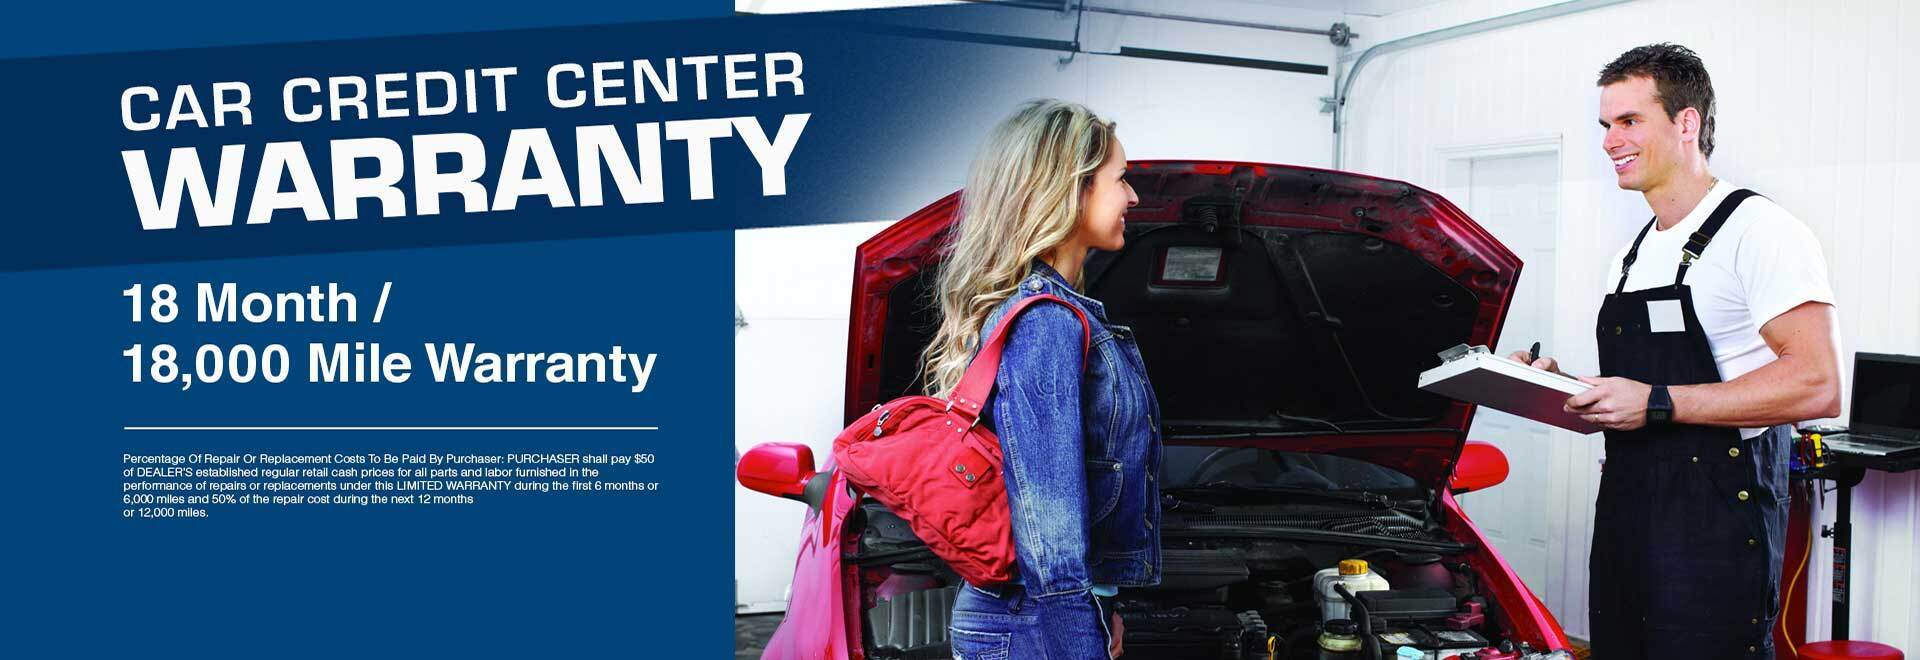 Car Credit Center Warranty